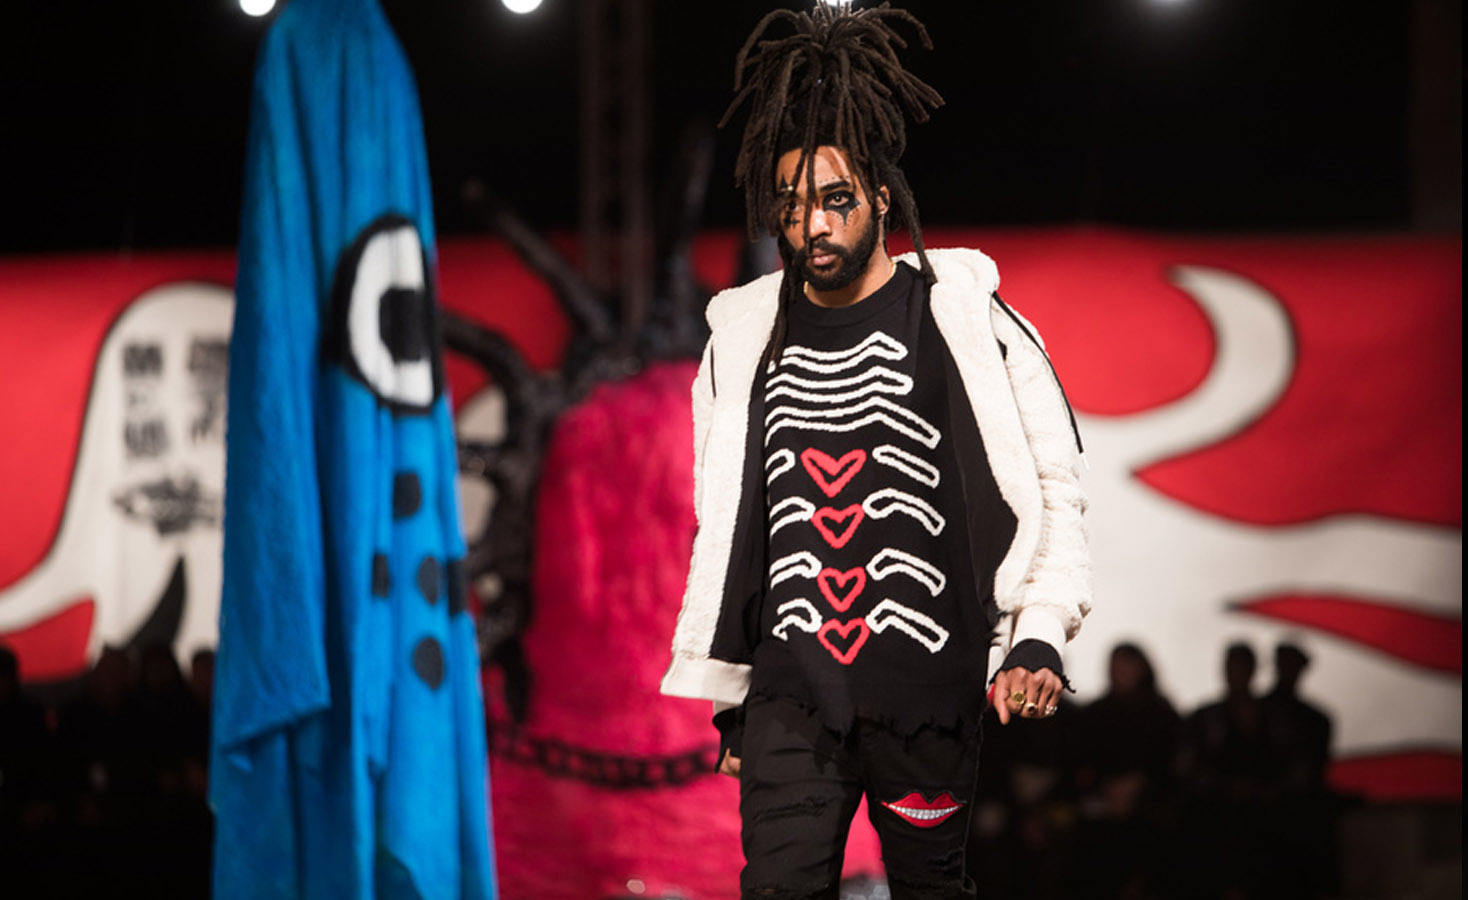 Latest And Greatest Of Menswear From Pitti Uomo : Art Meets Fashion